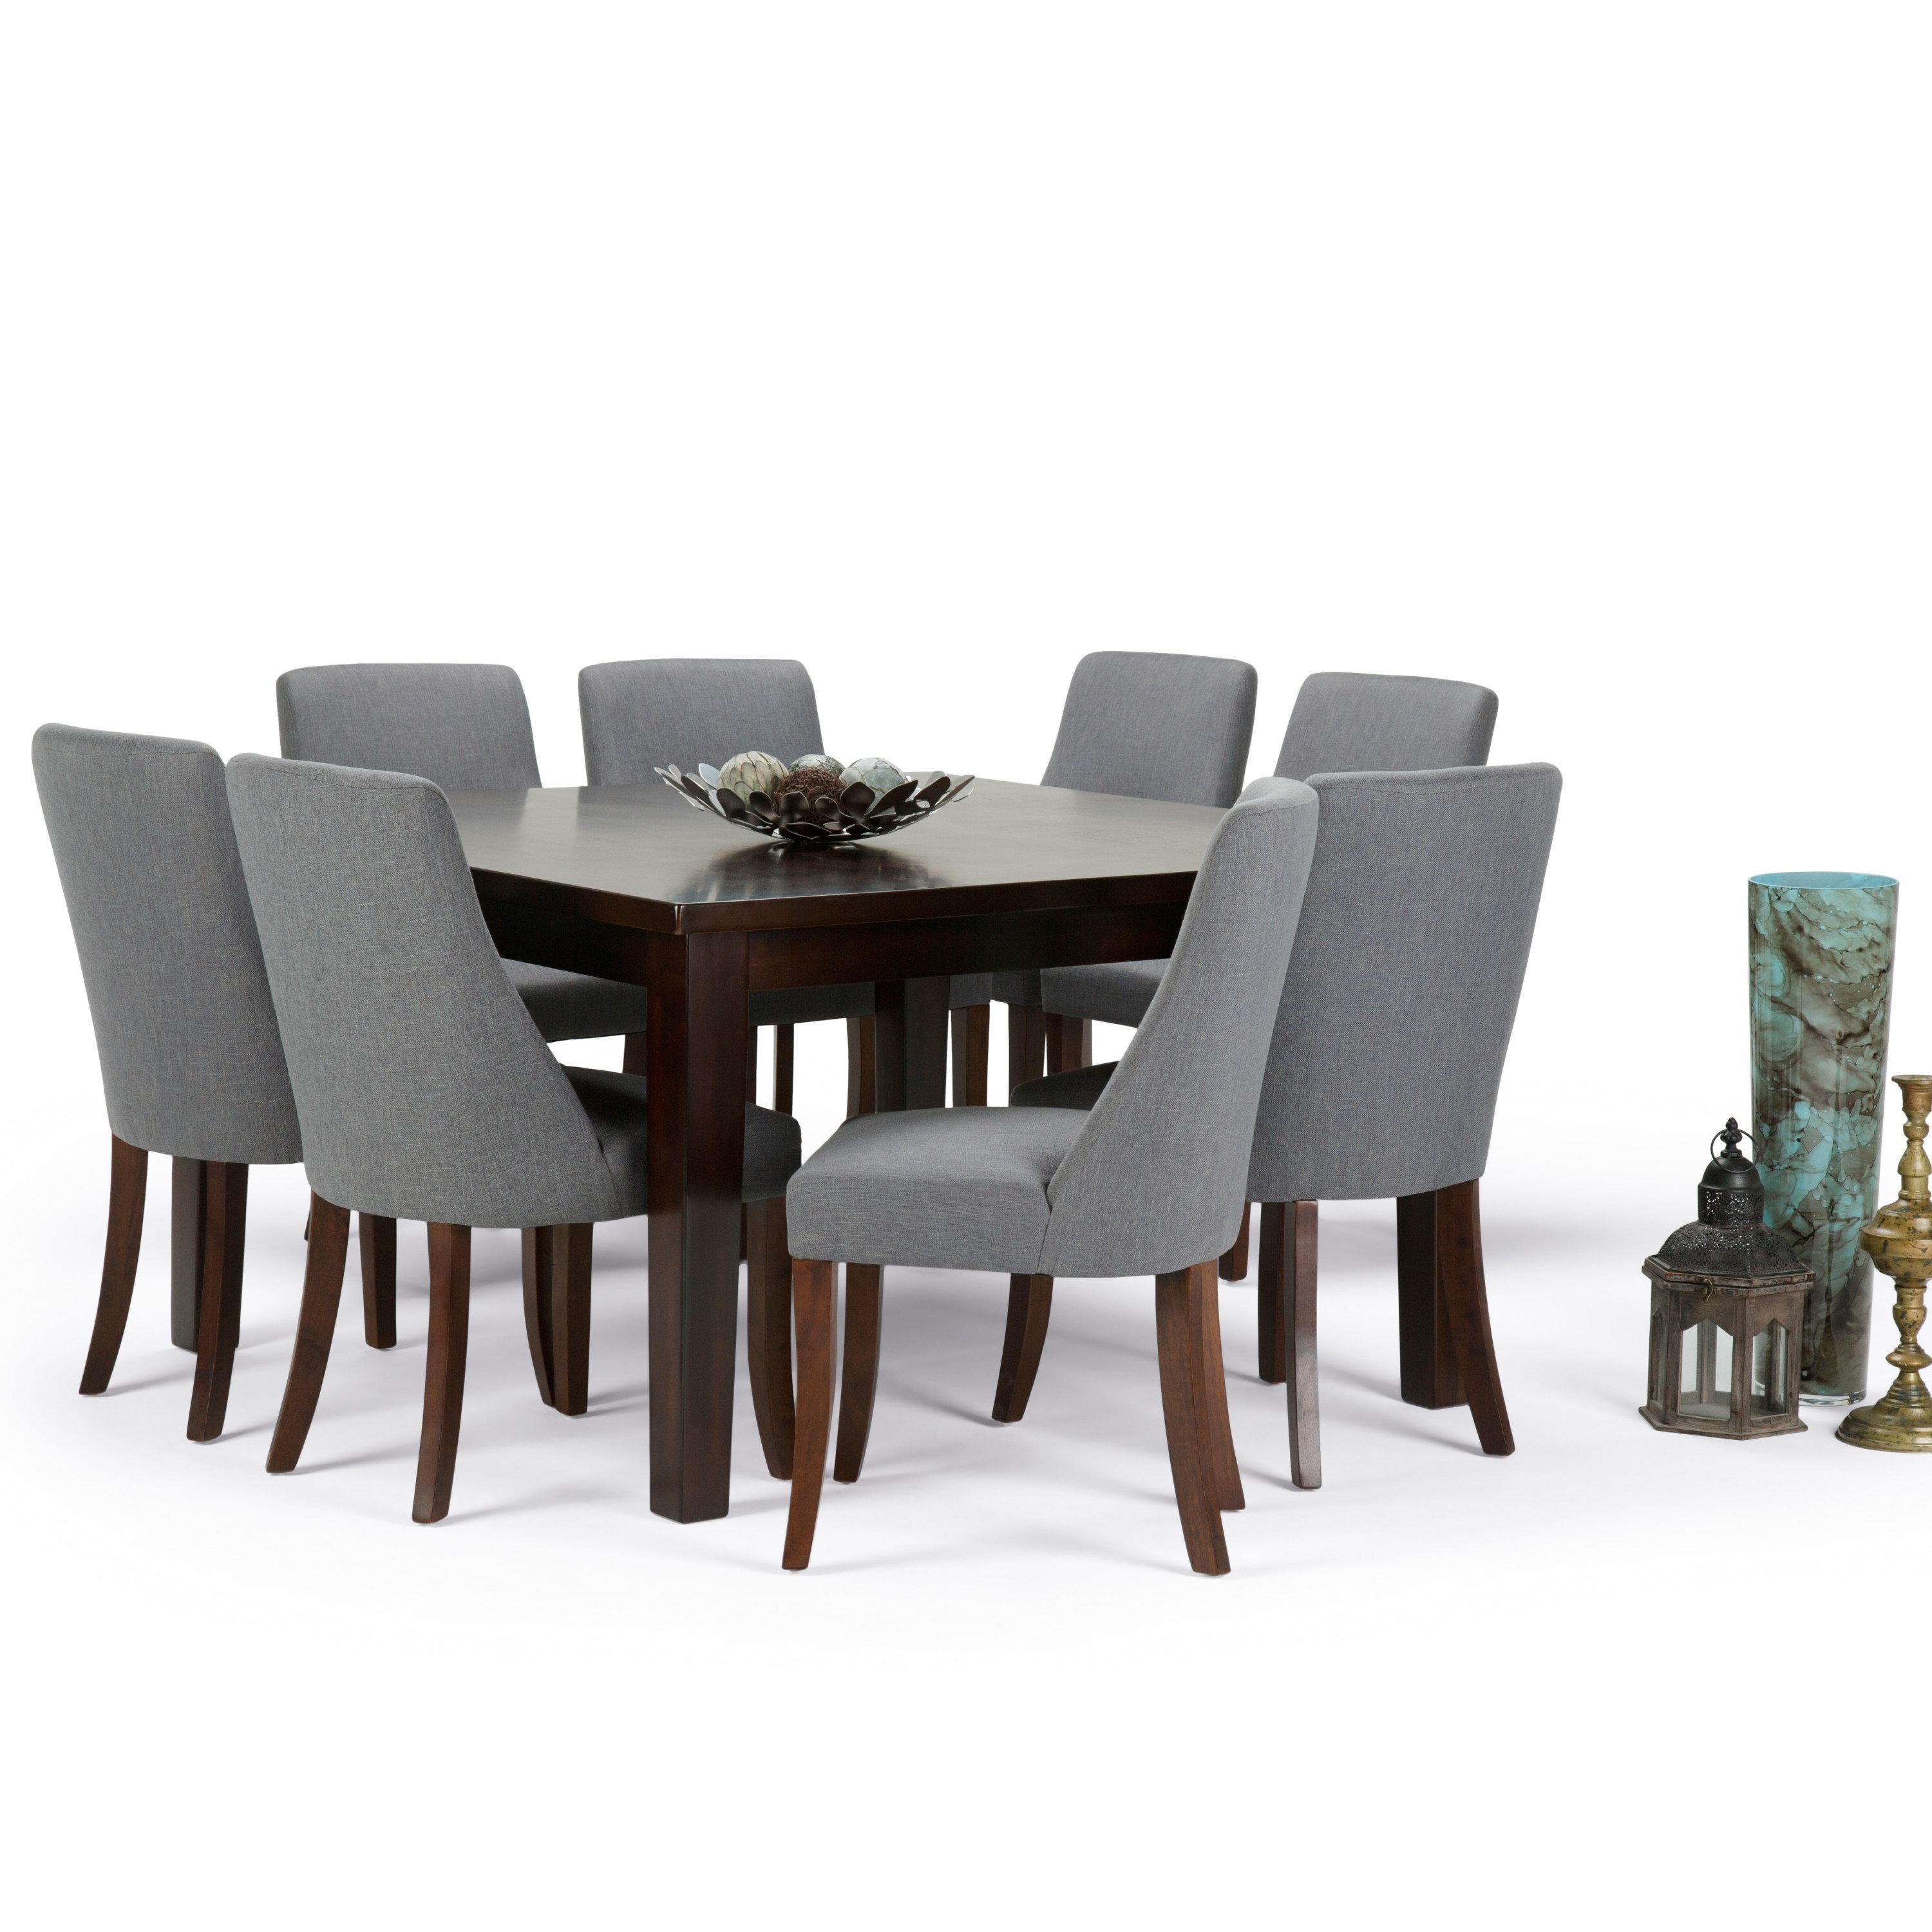 Simpli Home Walden 9 Piece Dining Set | Wayfair Intended For Most Current Walden 7 Piece Extension Dining Sets (Image 15 of 20)